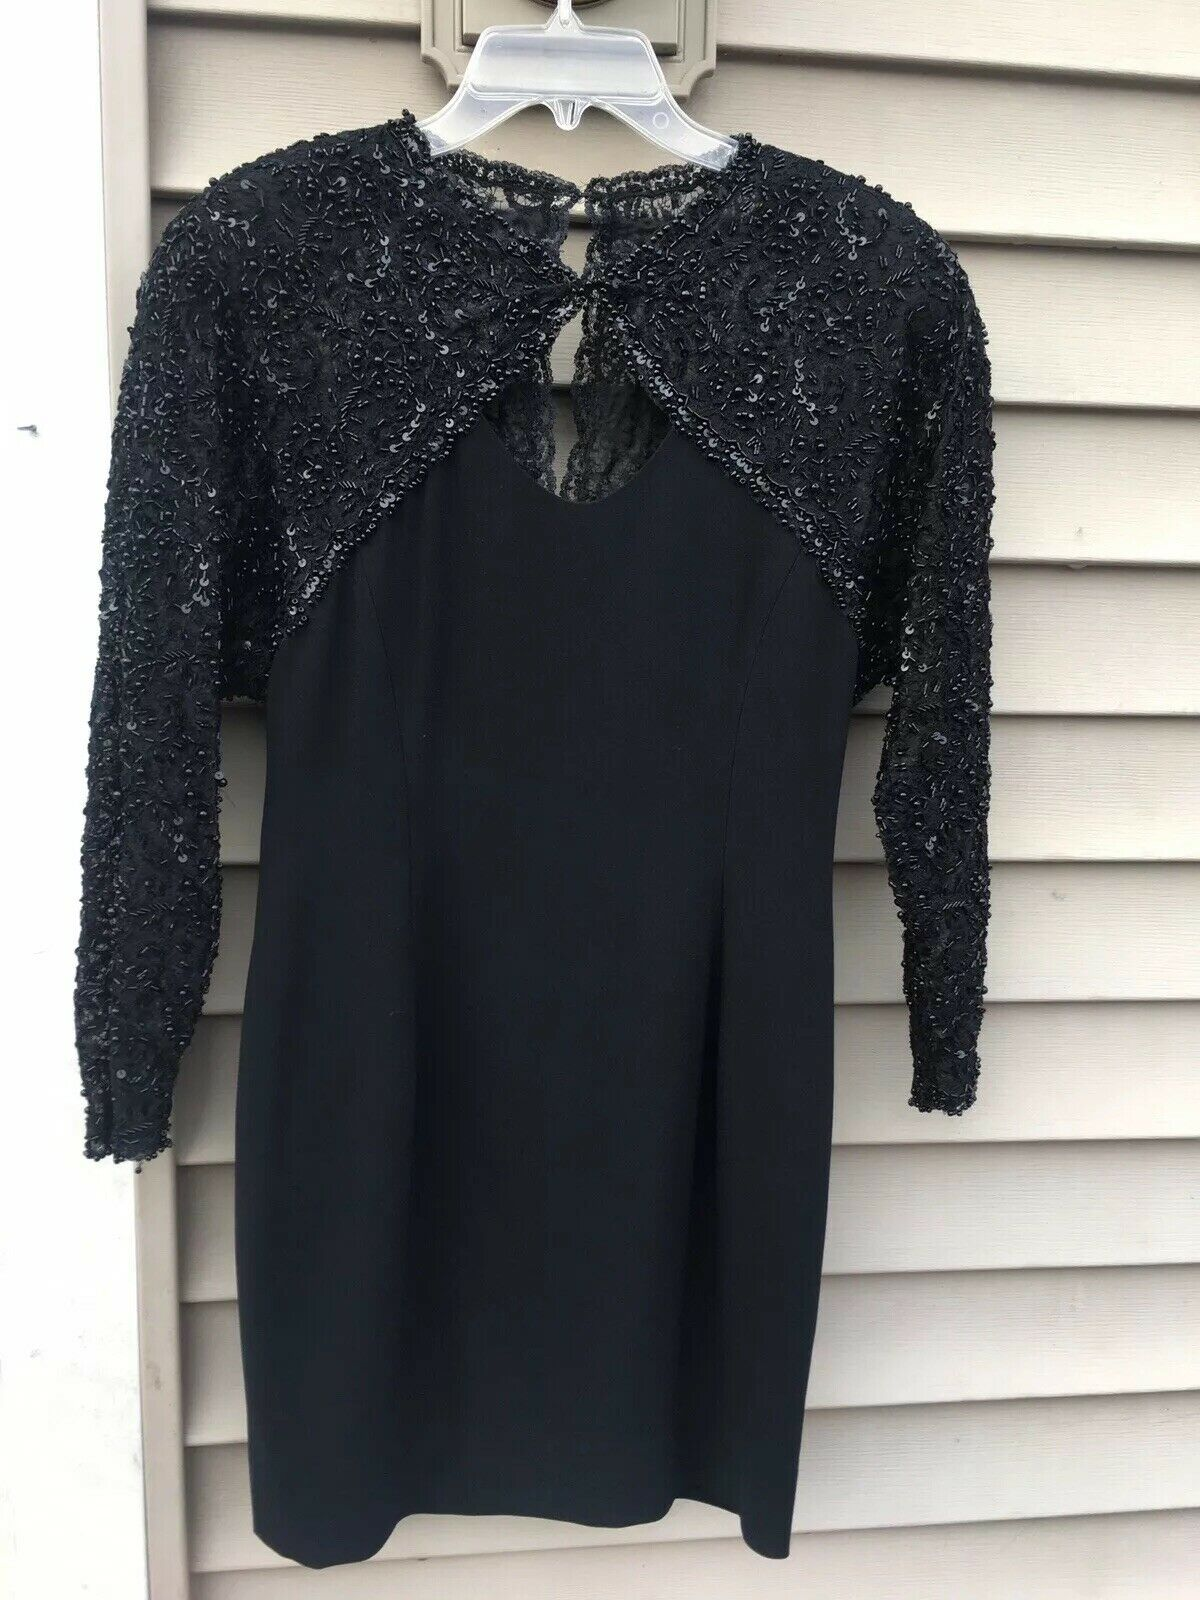 Dore By Della Roufogali Black Sequined Beaded Evening Dress Size 4